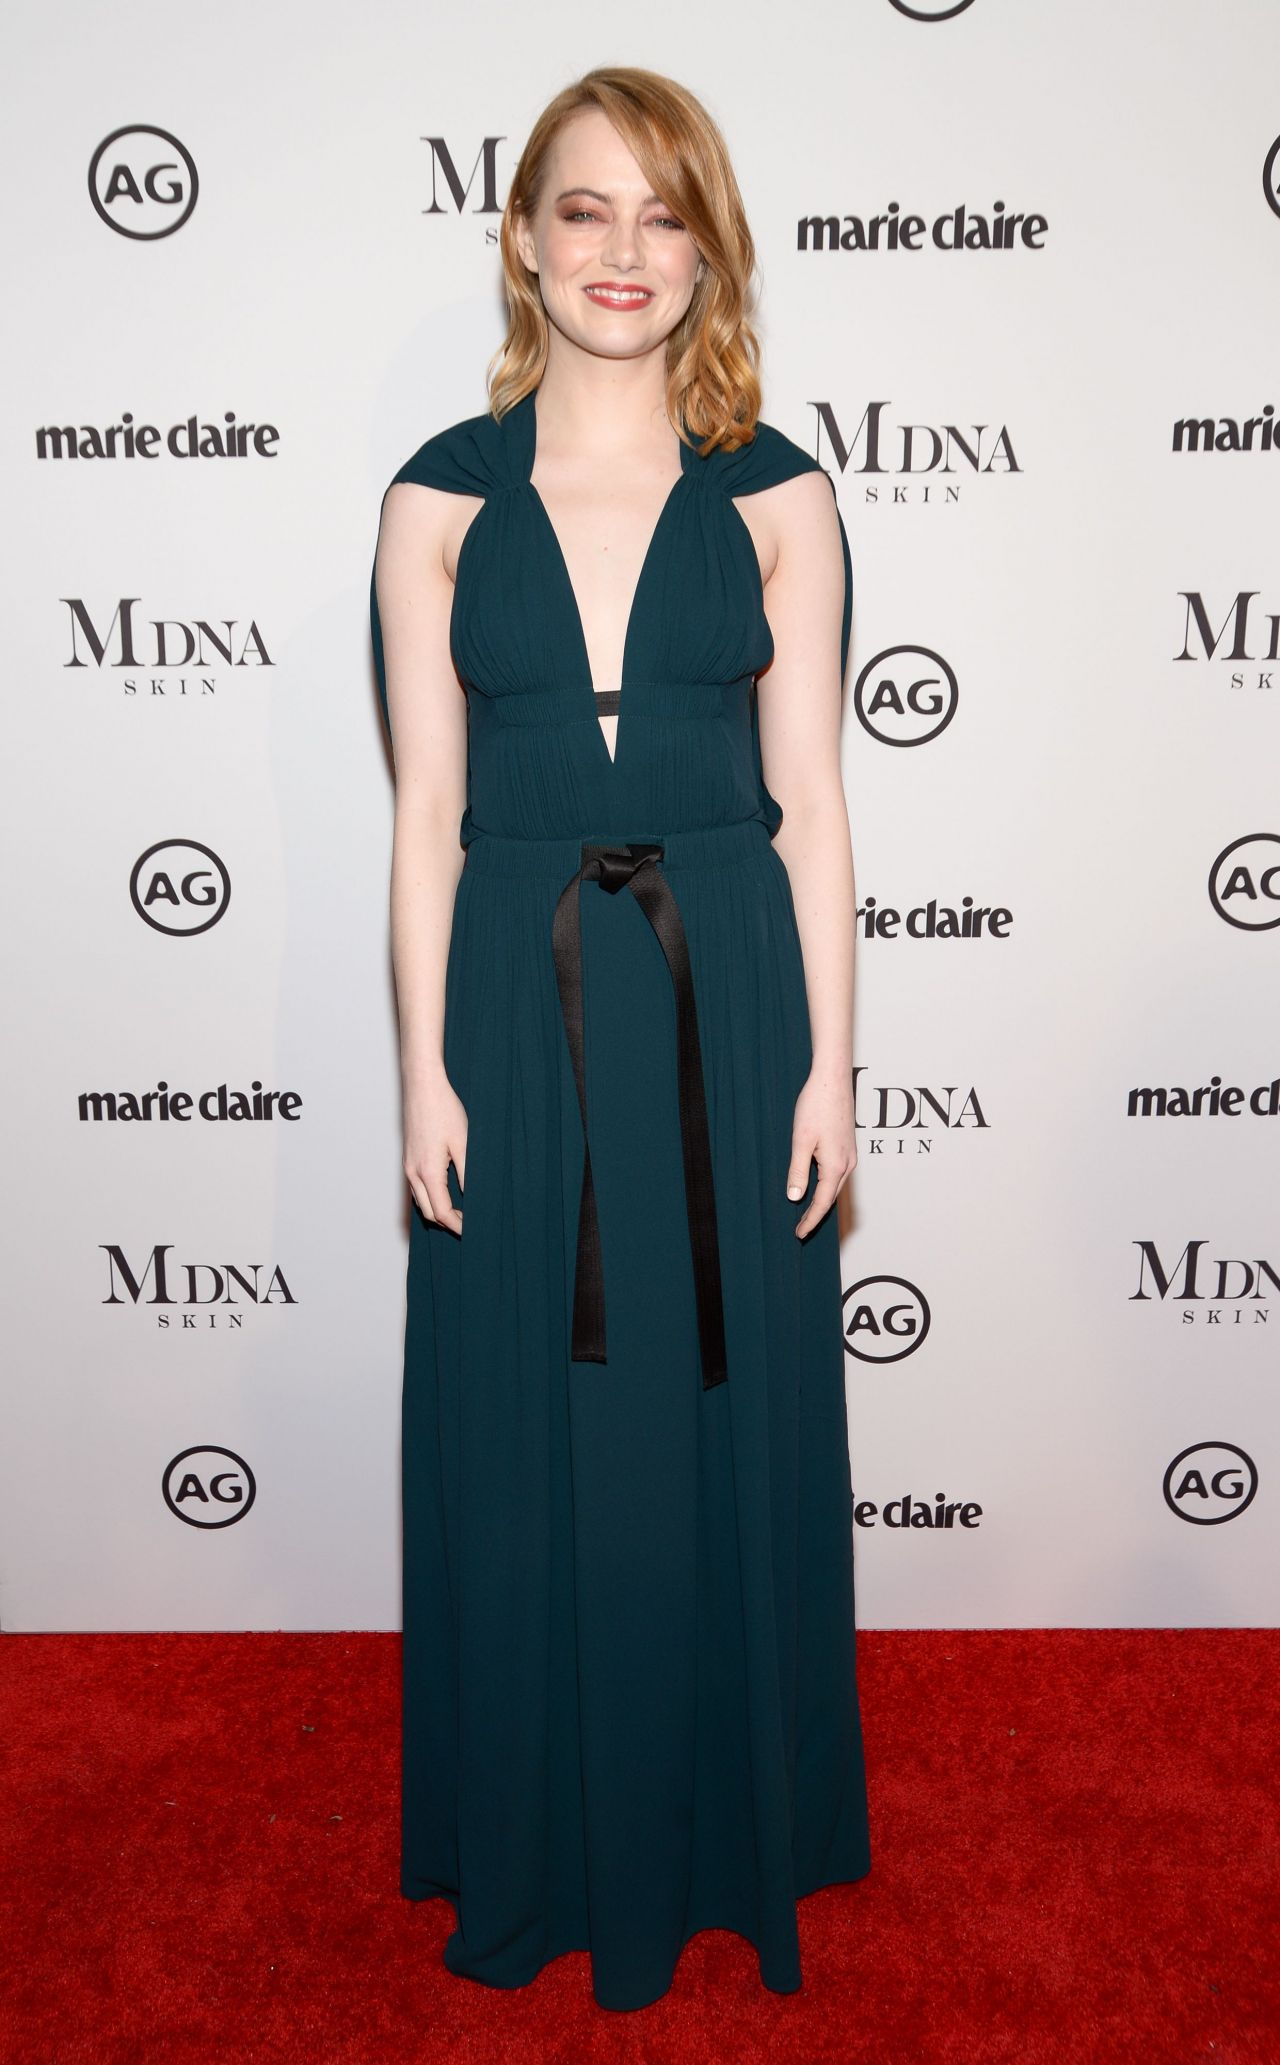 http://celebmafia.com/wp-content/uploads/2018/01/emma-stone-marie-claire-image-makers-awards-in-los-angeles-6.jpg